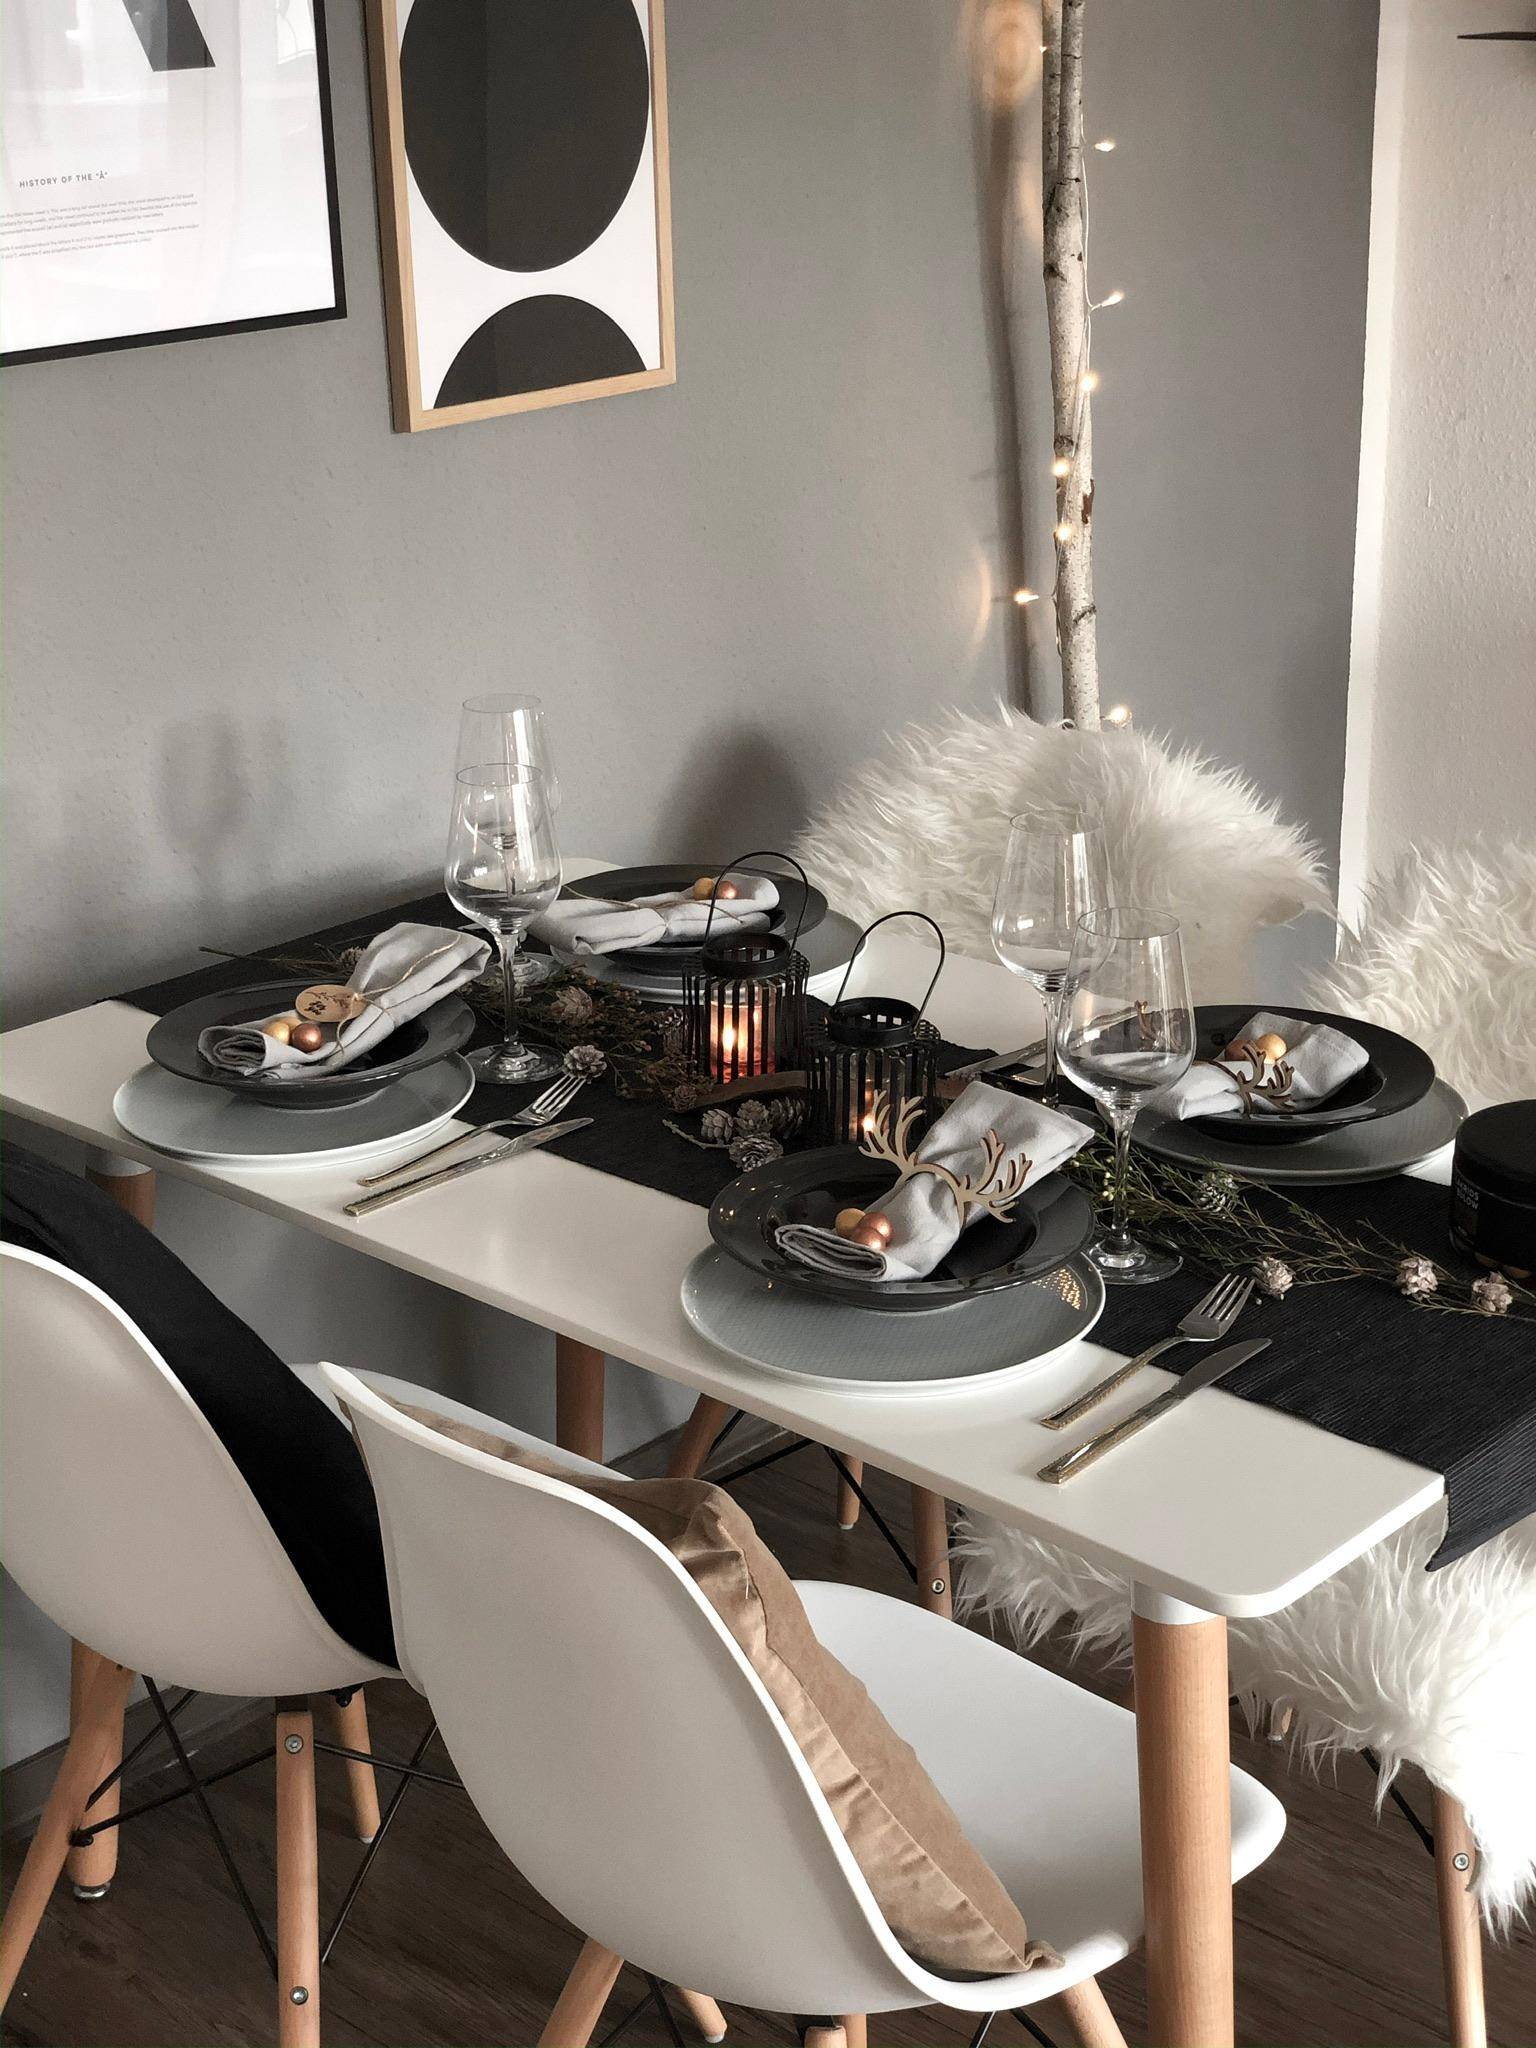 Table setting und ein bisschen Inspiration für den Winter. ✨❄️